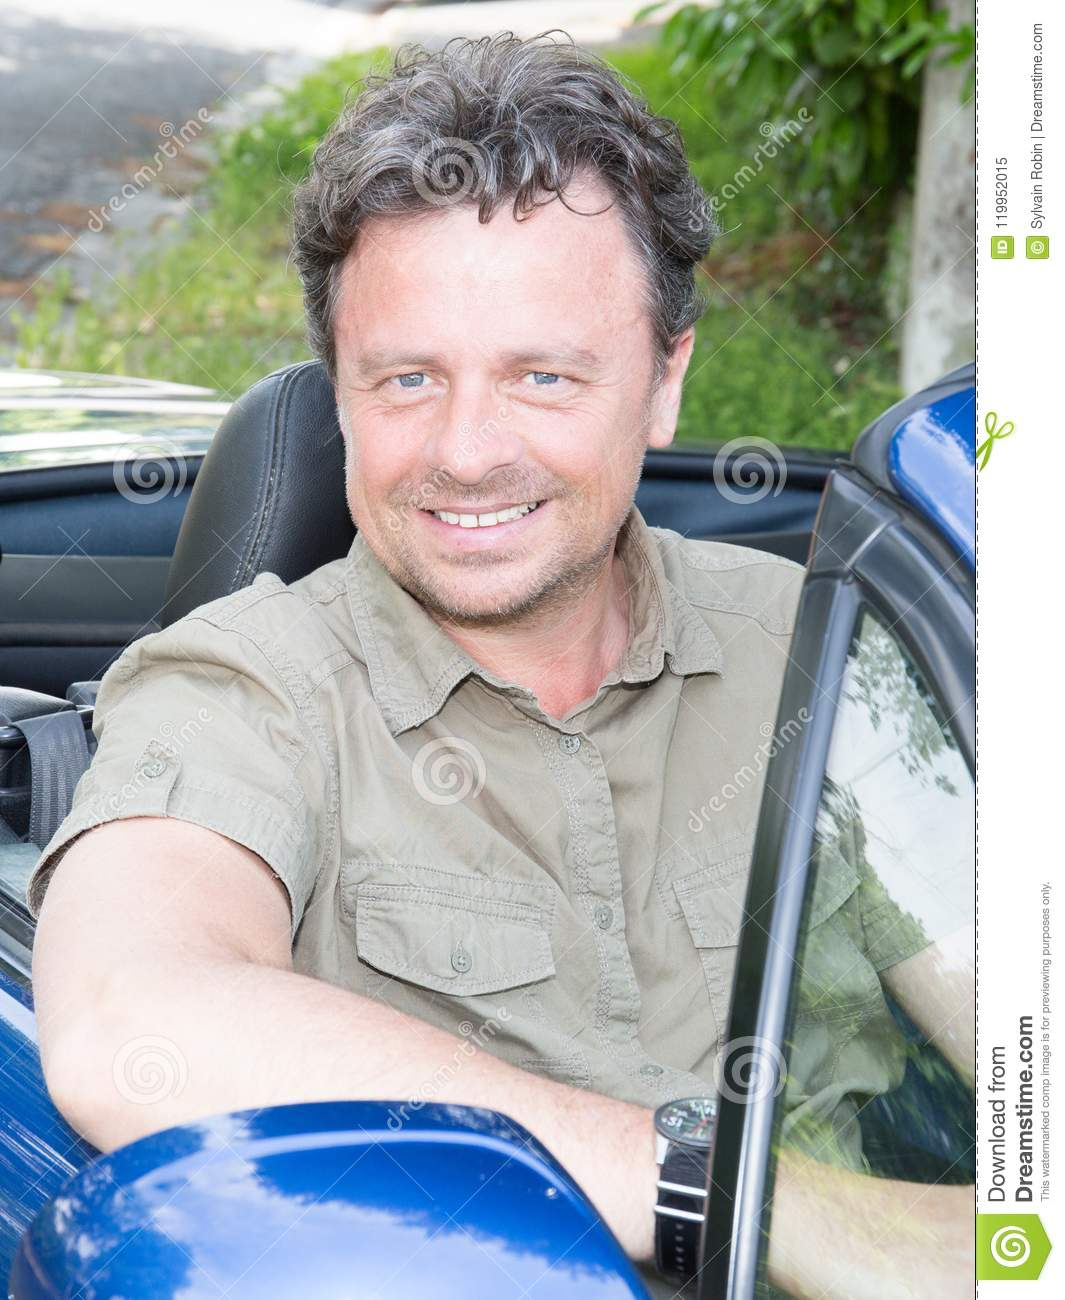 Owner Handsome man sitting in his newly bought cabriolet car looking out the window smiling